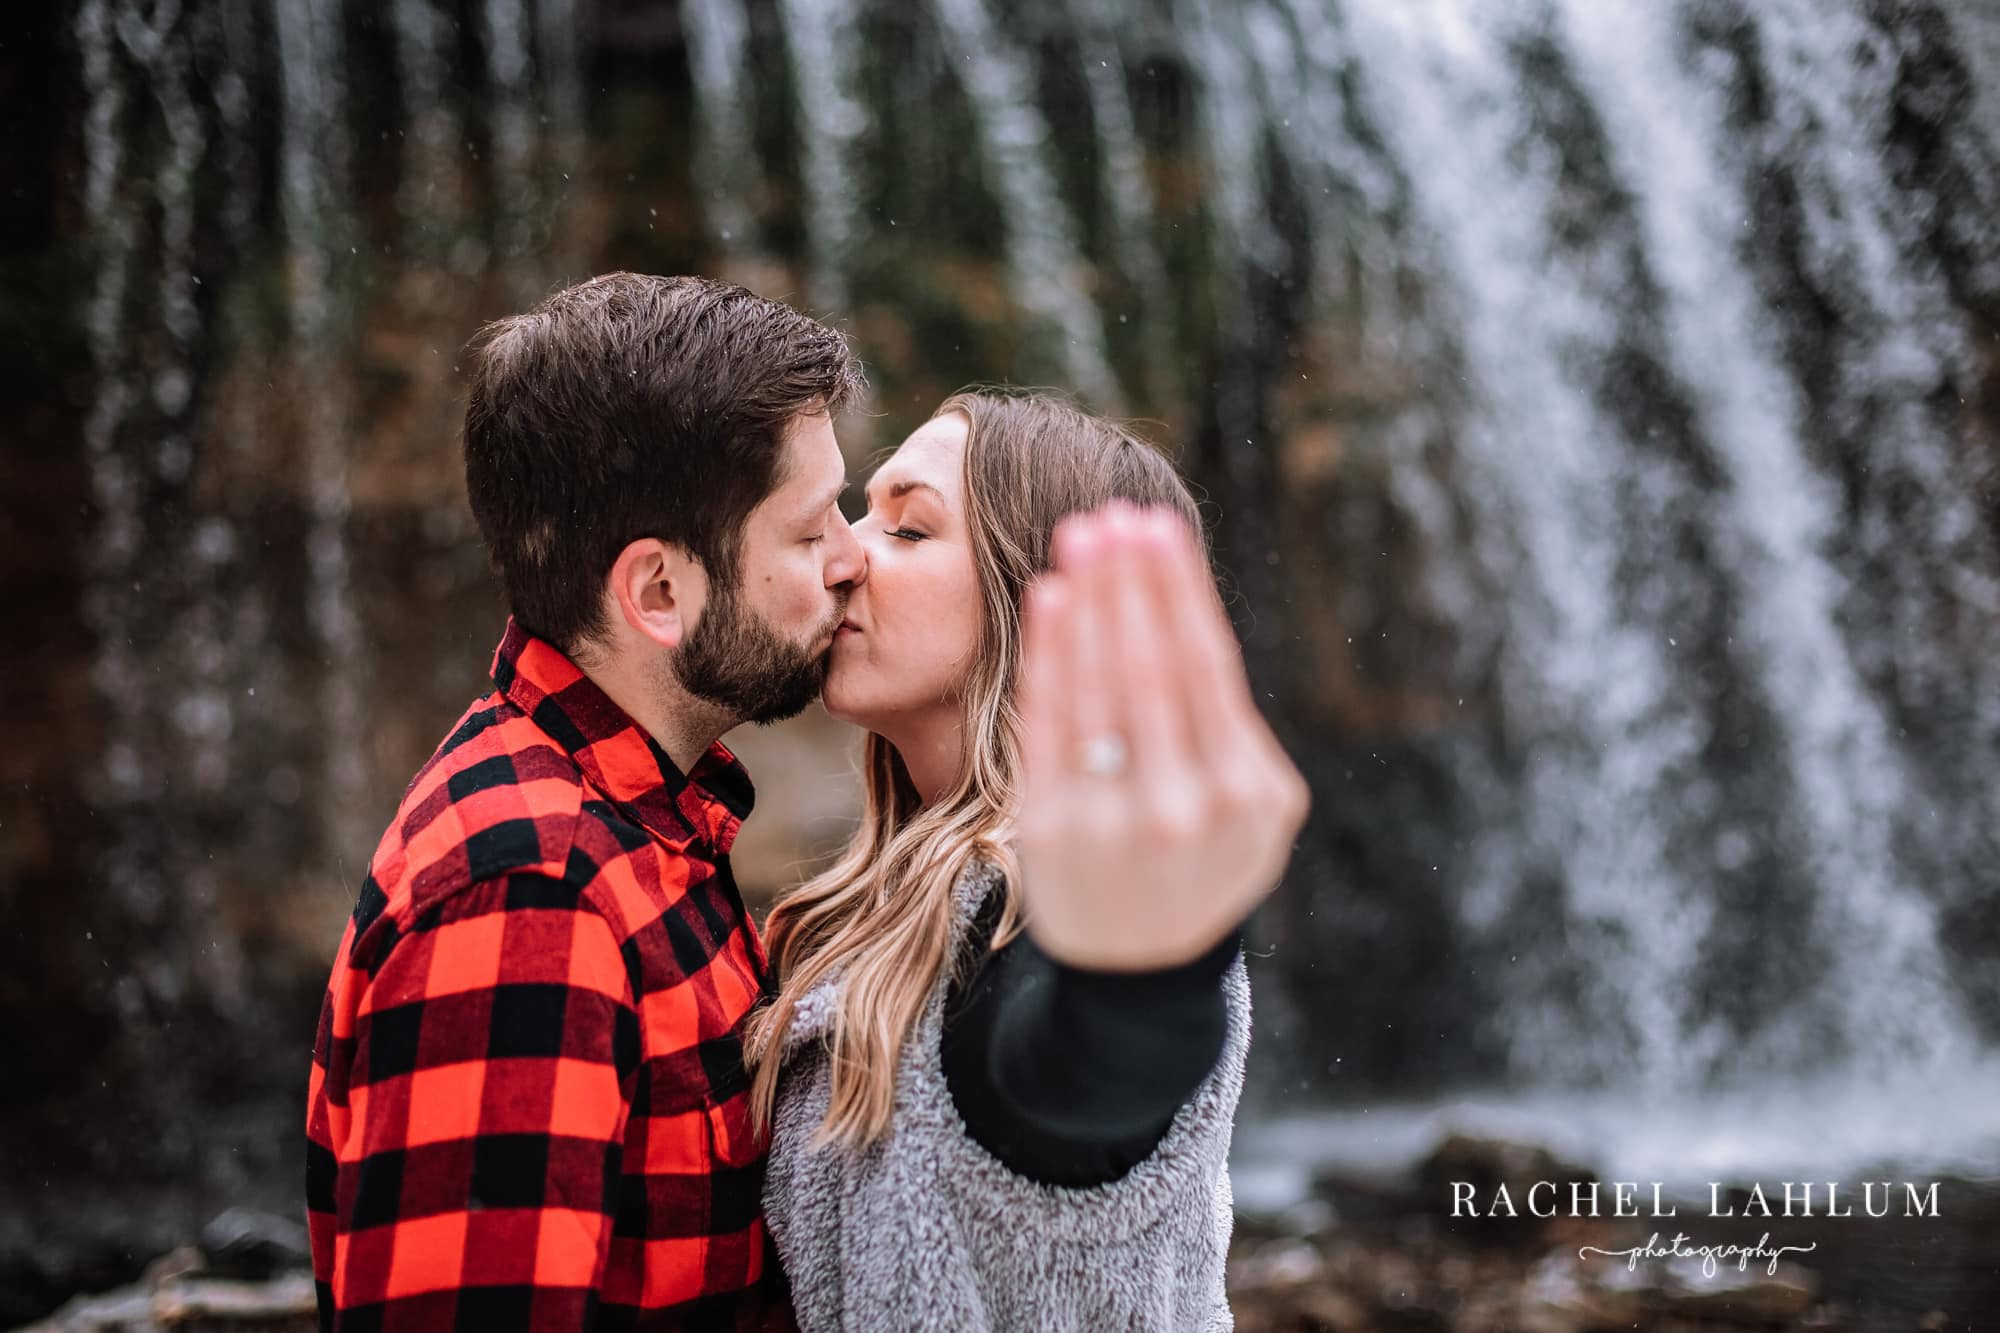 Winter engagement session at Cascade Falls in Osceola, WI.